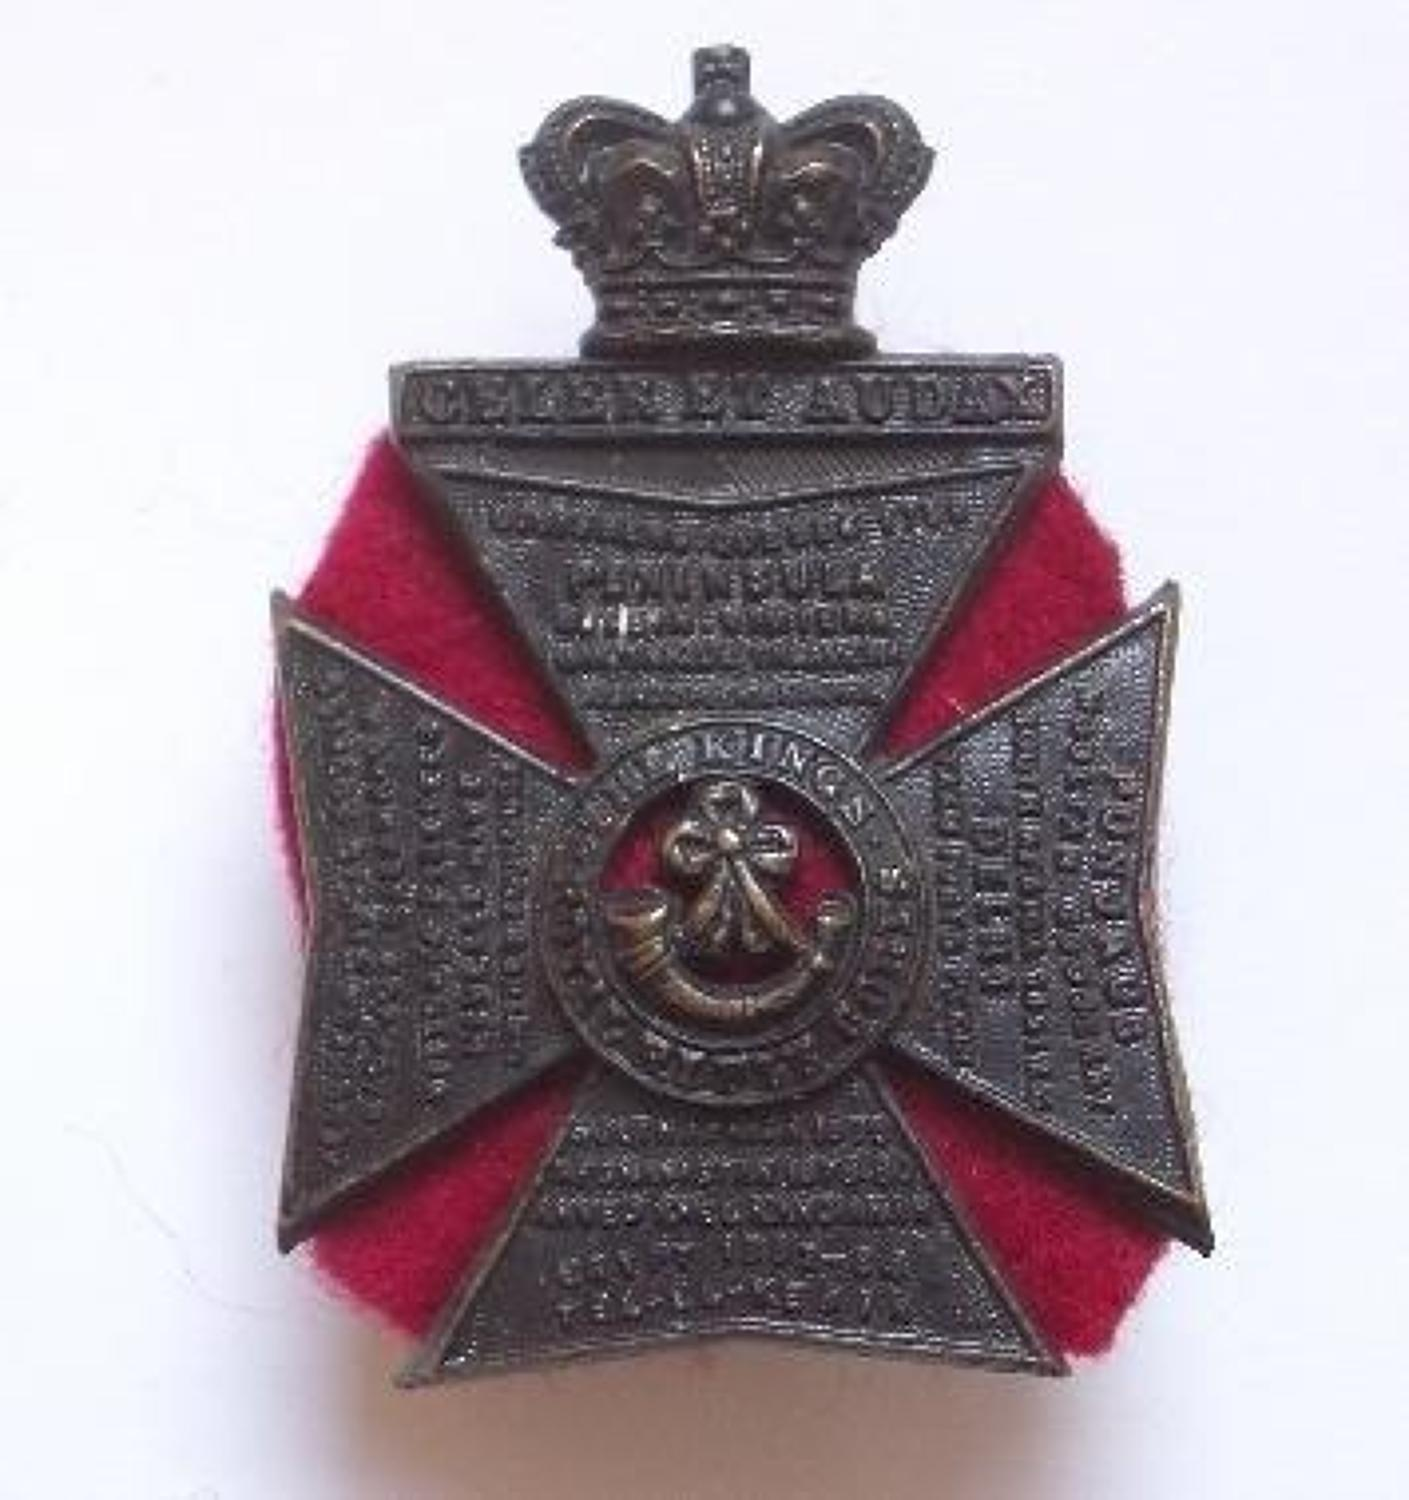 King's Royal Rifle Corps KRRC OR's cap badge circa 1896-1901